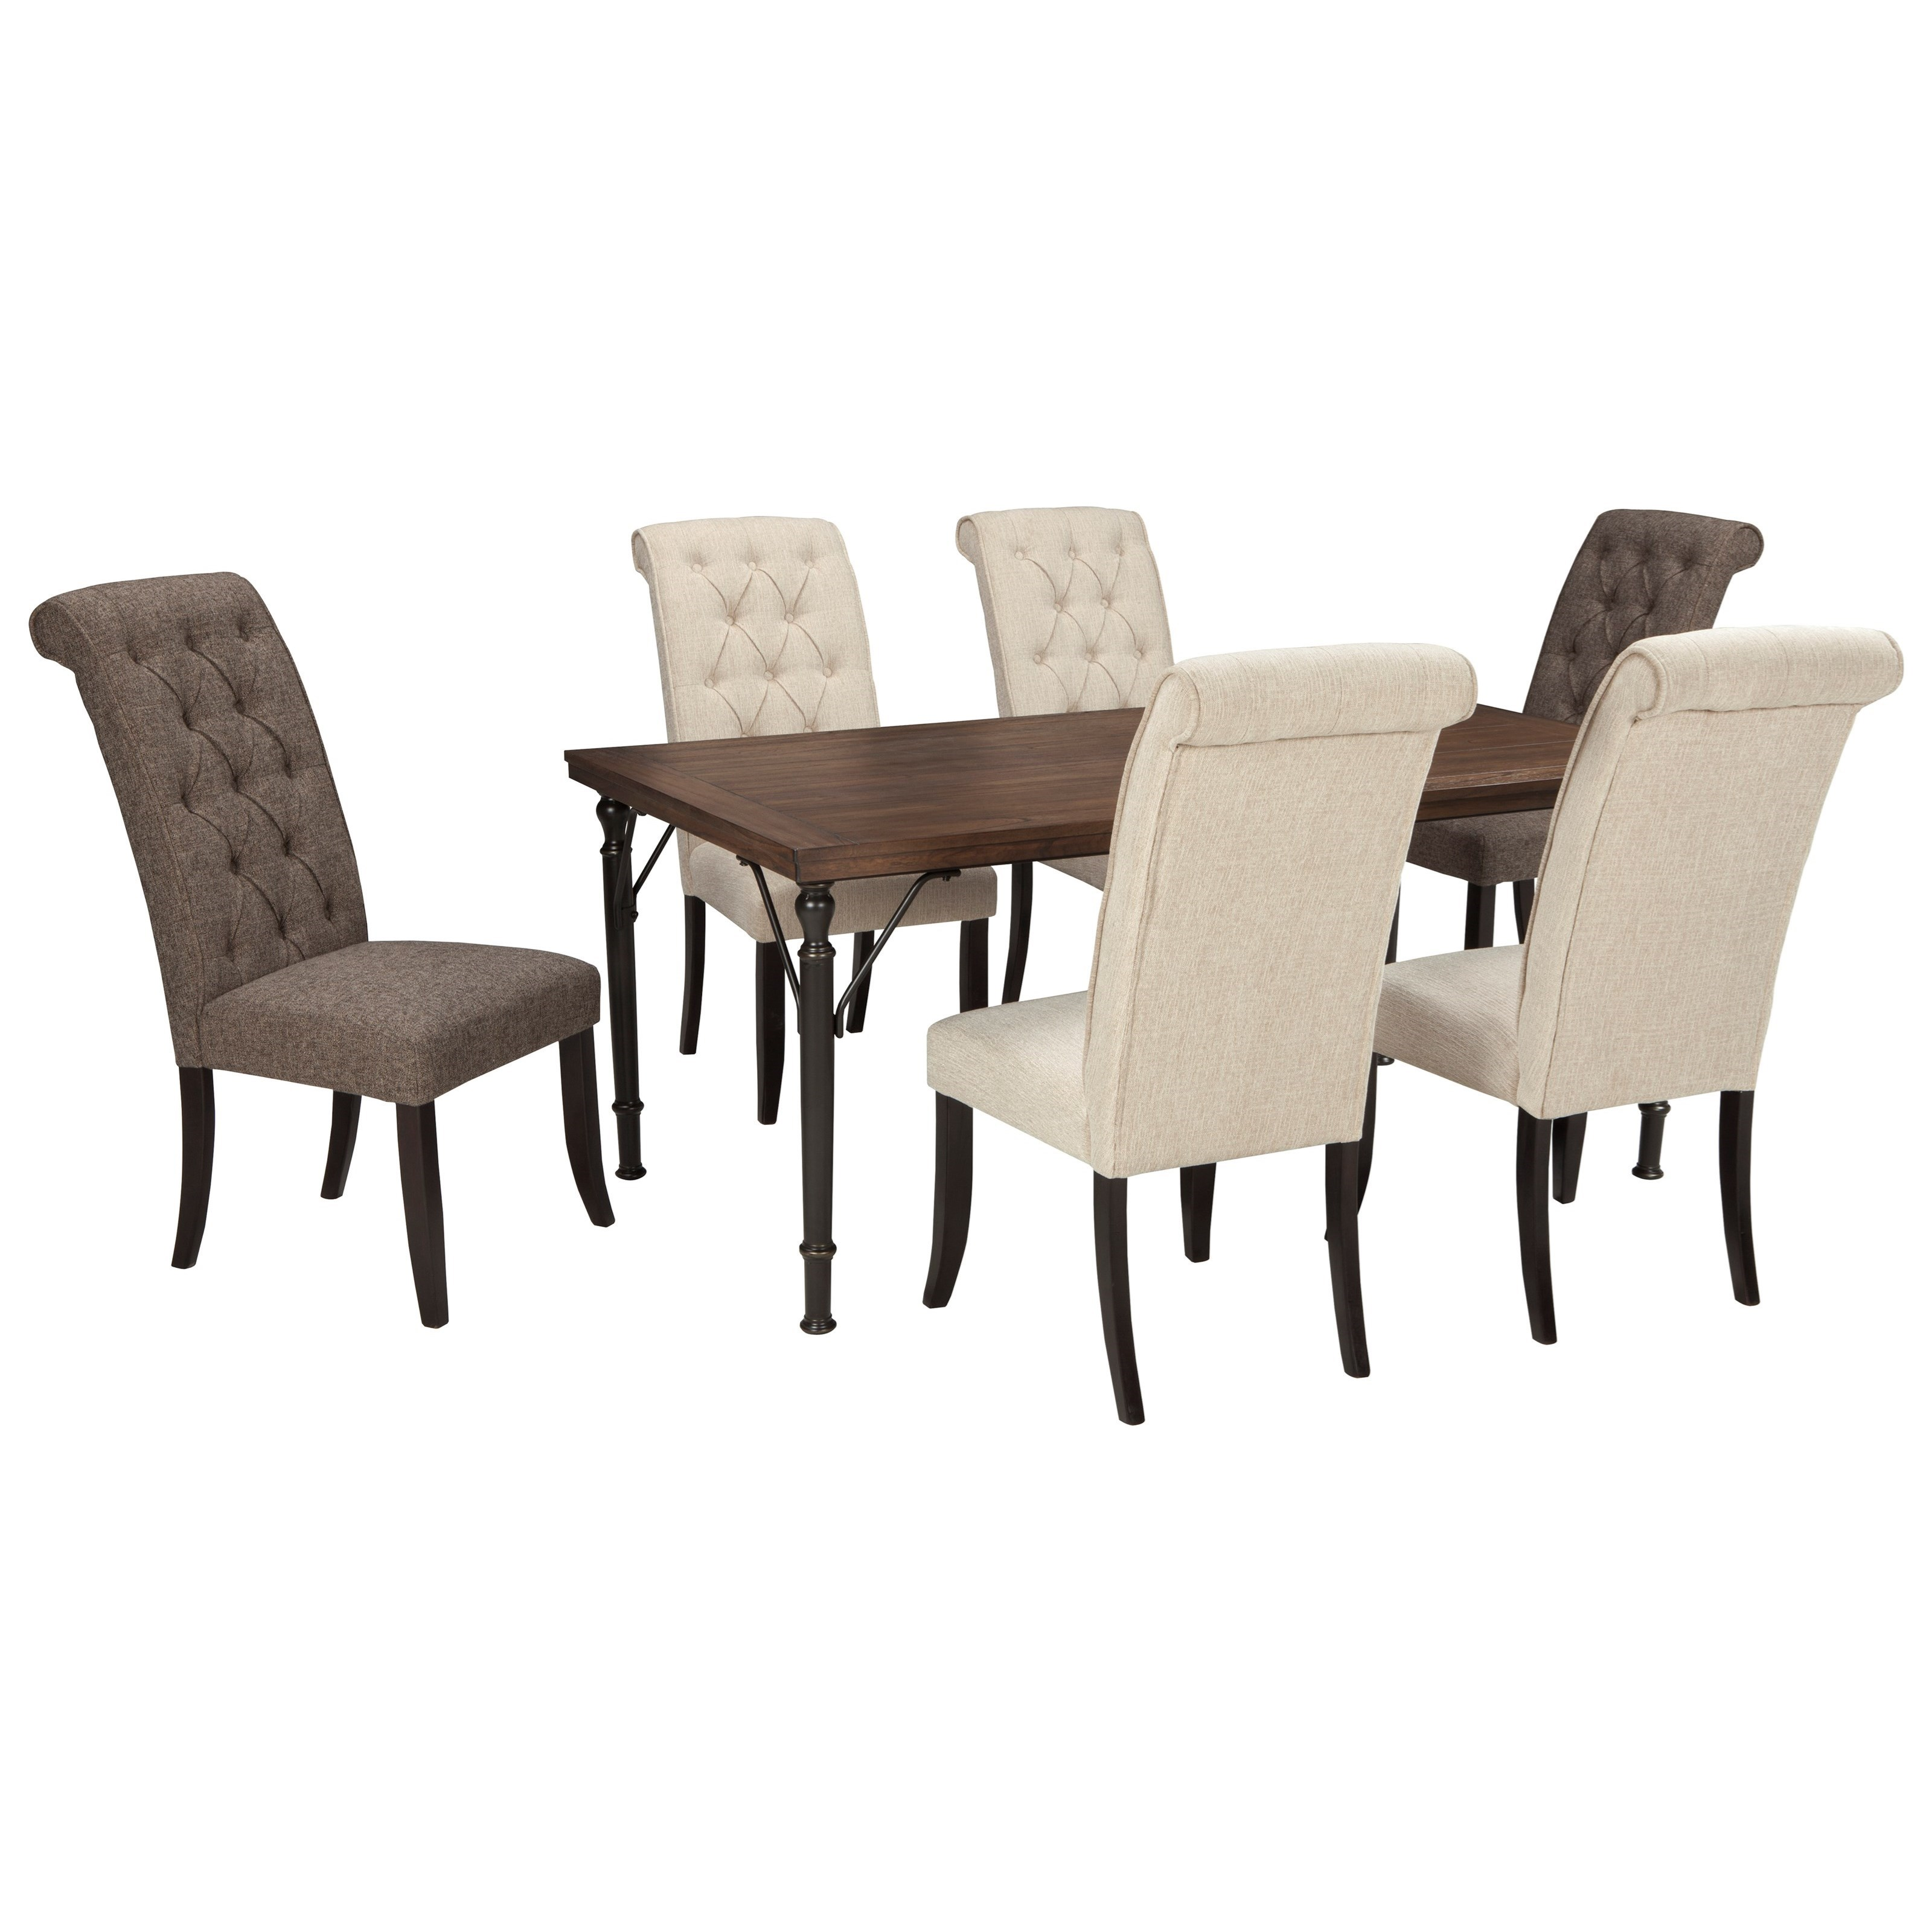 Signature Design by Ashley Tripton 7-Piece Rectangular Dining Room Table Set - Item Number: D530-25+2x02+4x01